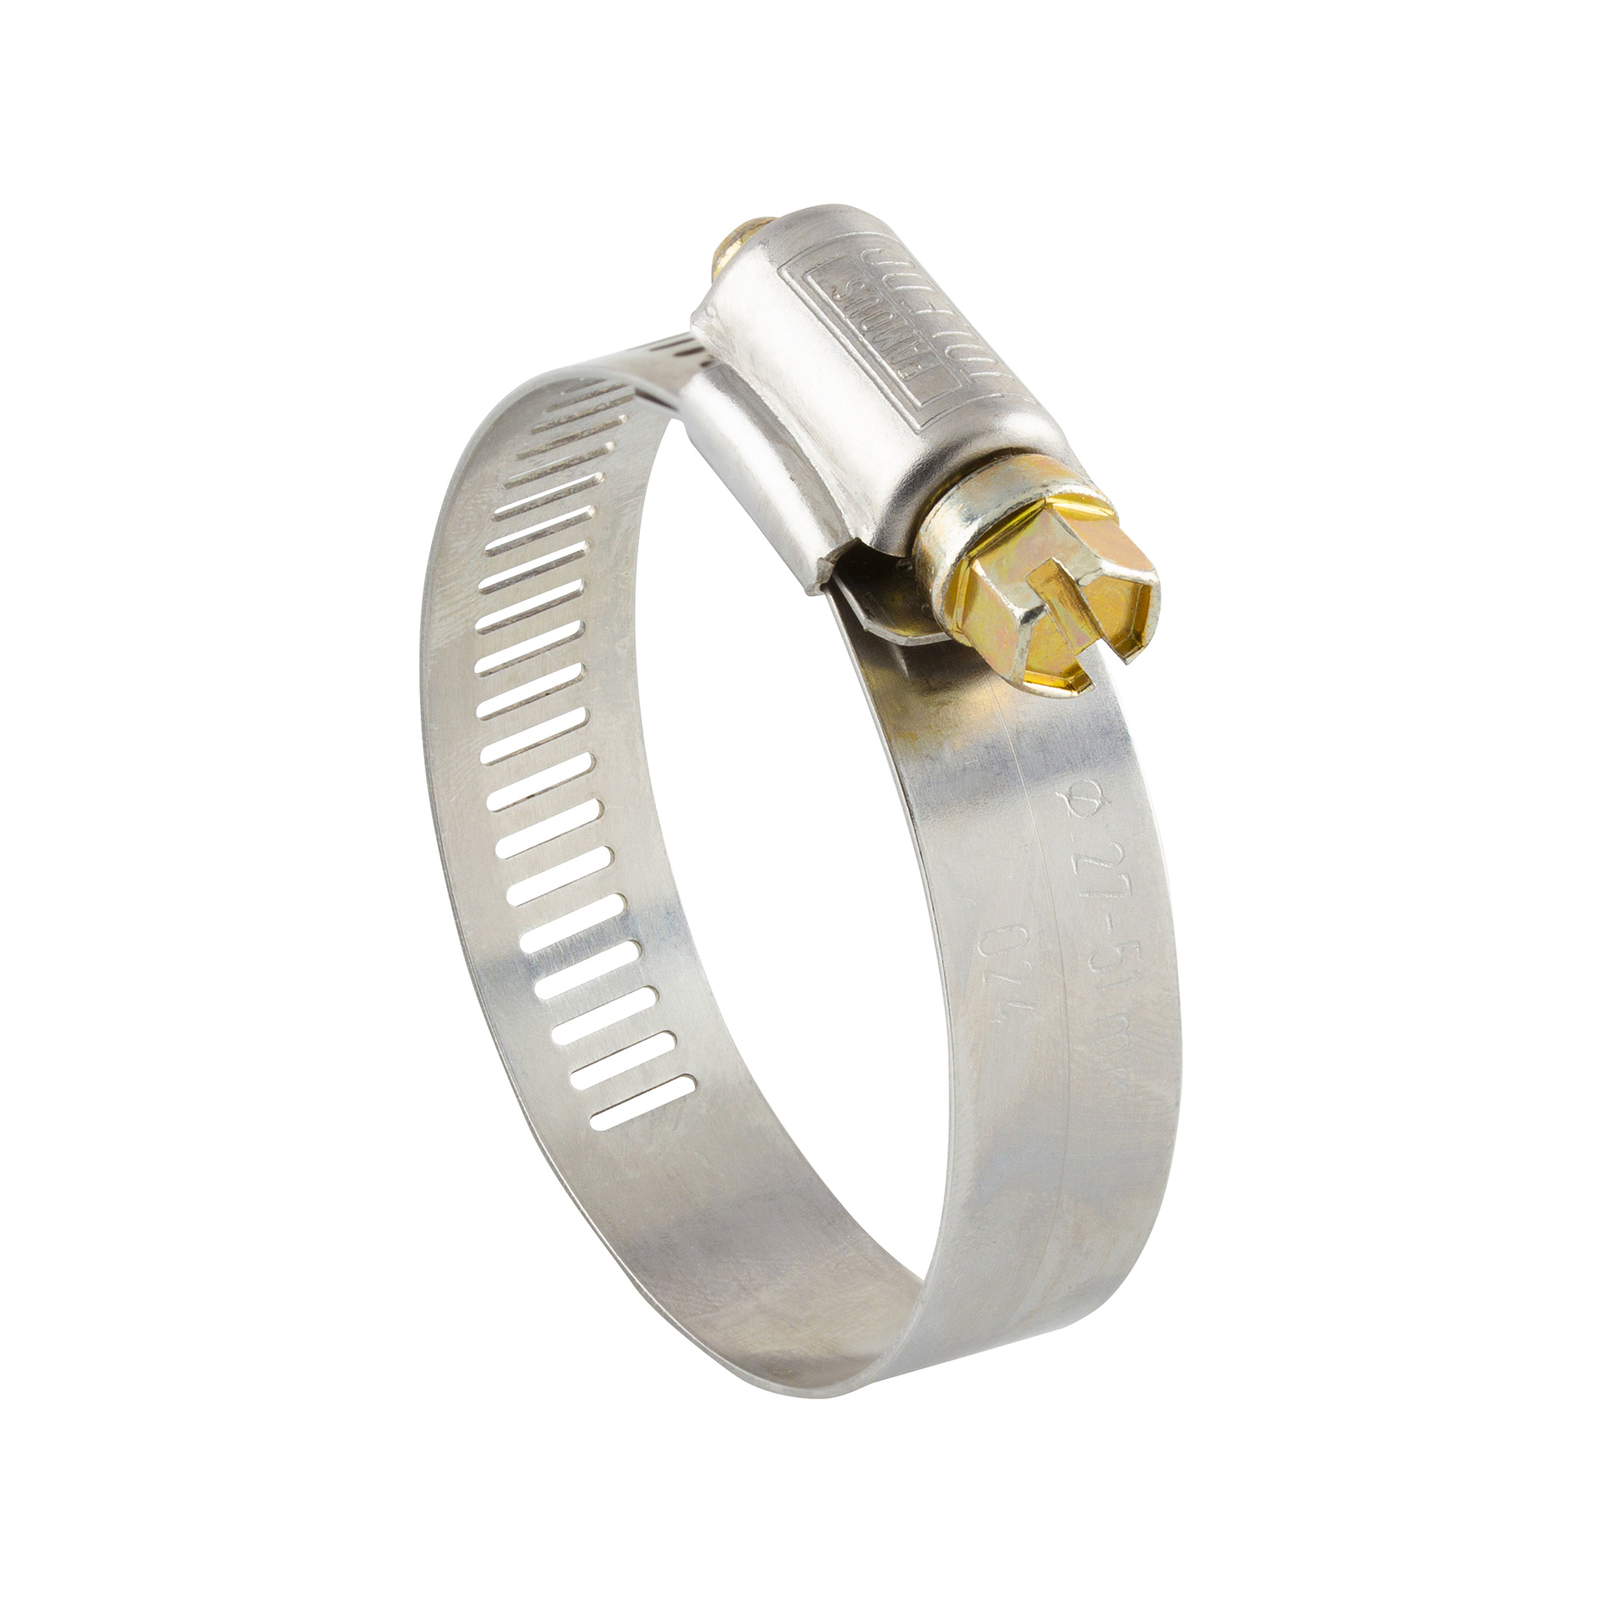 Toledo 27 - 51mm Perforated Clamp Hose Fit